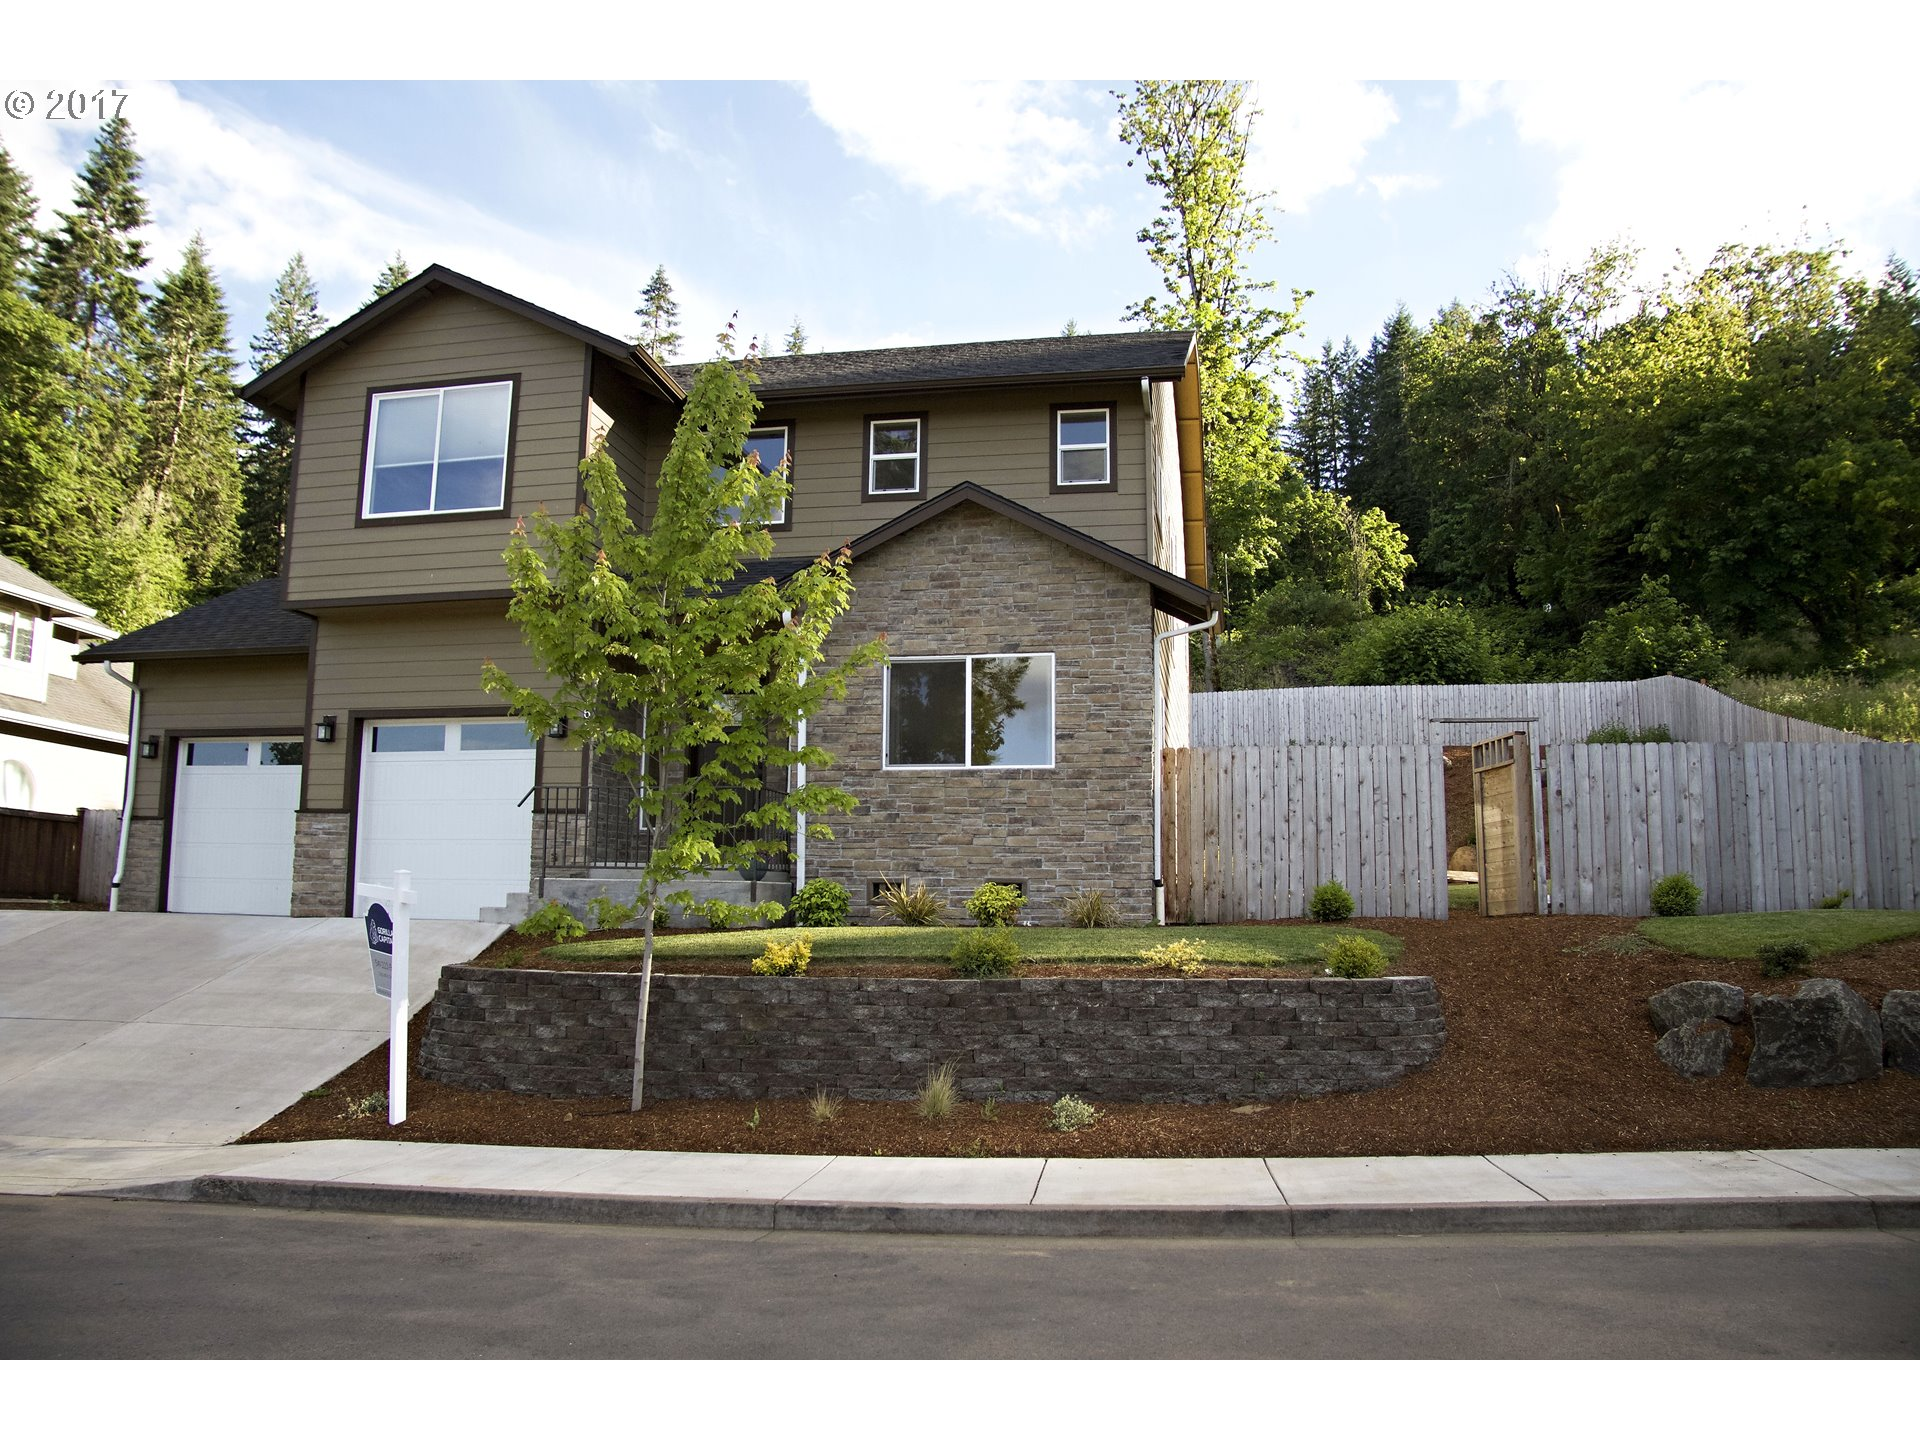 6689 IVY ST, Springfield, OR 97478